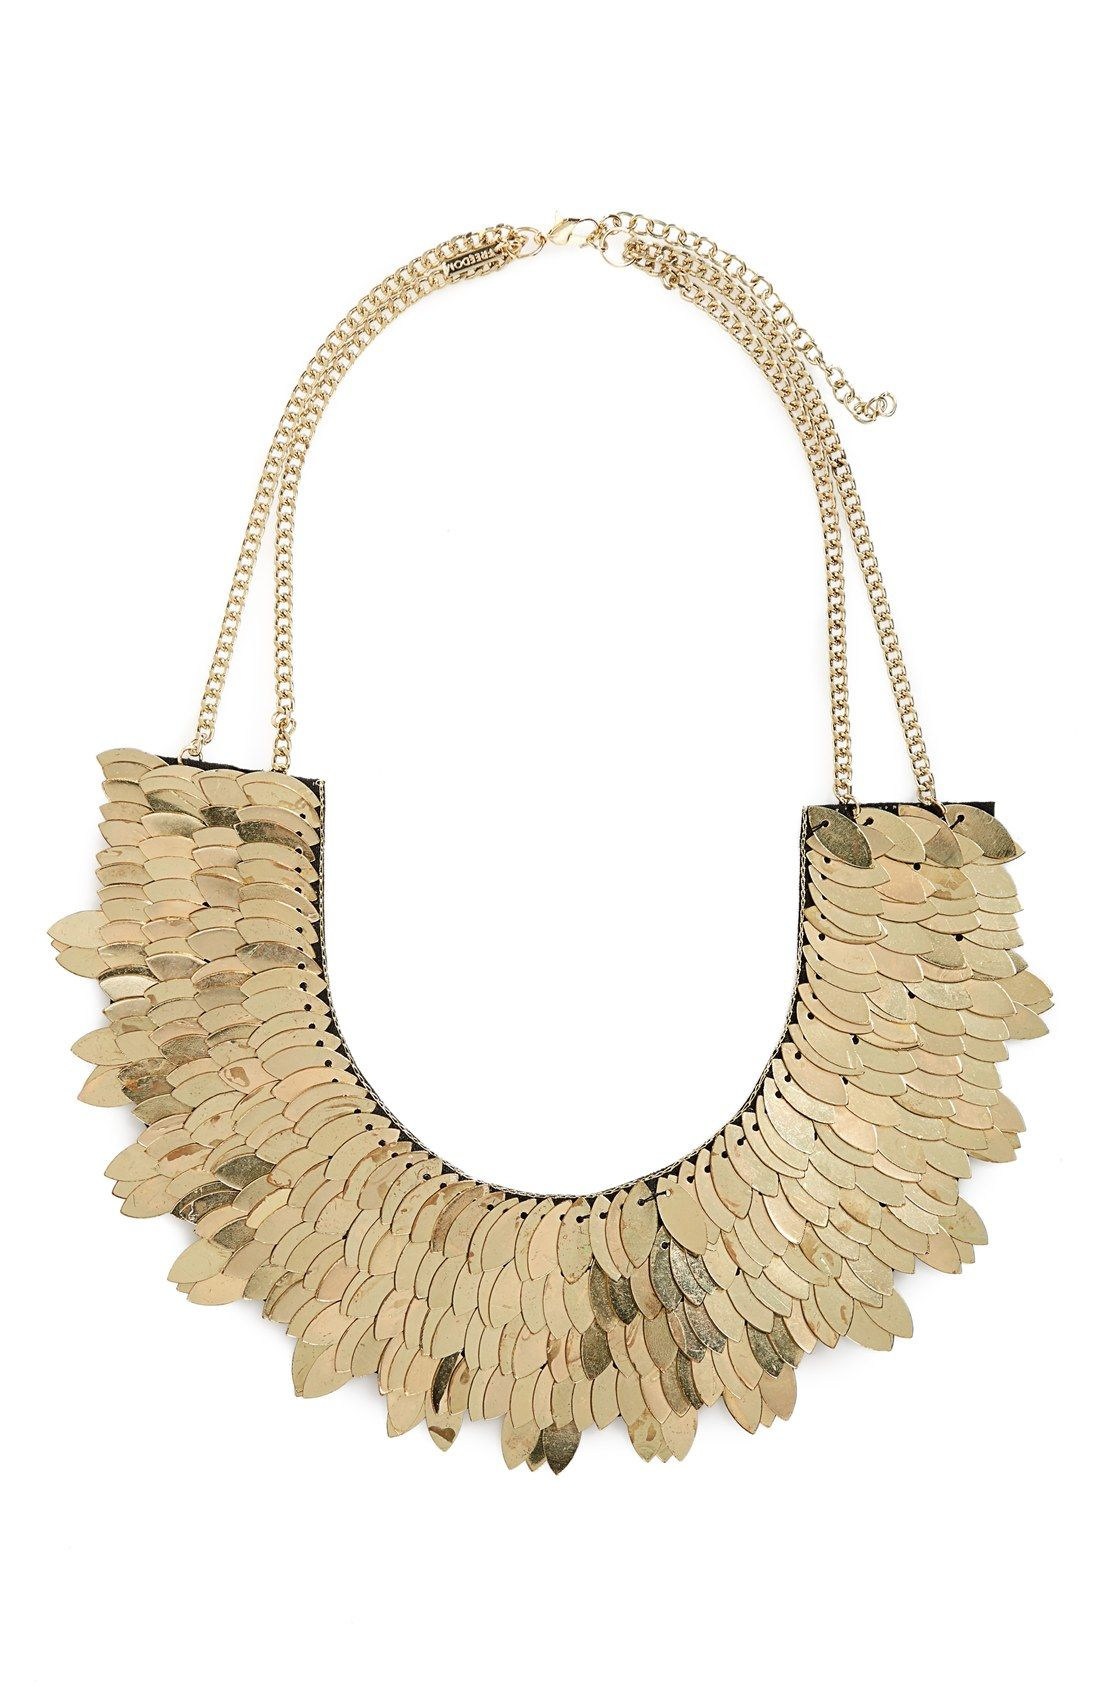 Radiant brass leaves are layered across the bib of this attention-grabbing collar necklace for a glamorous look.